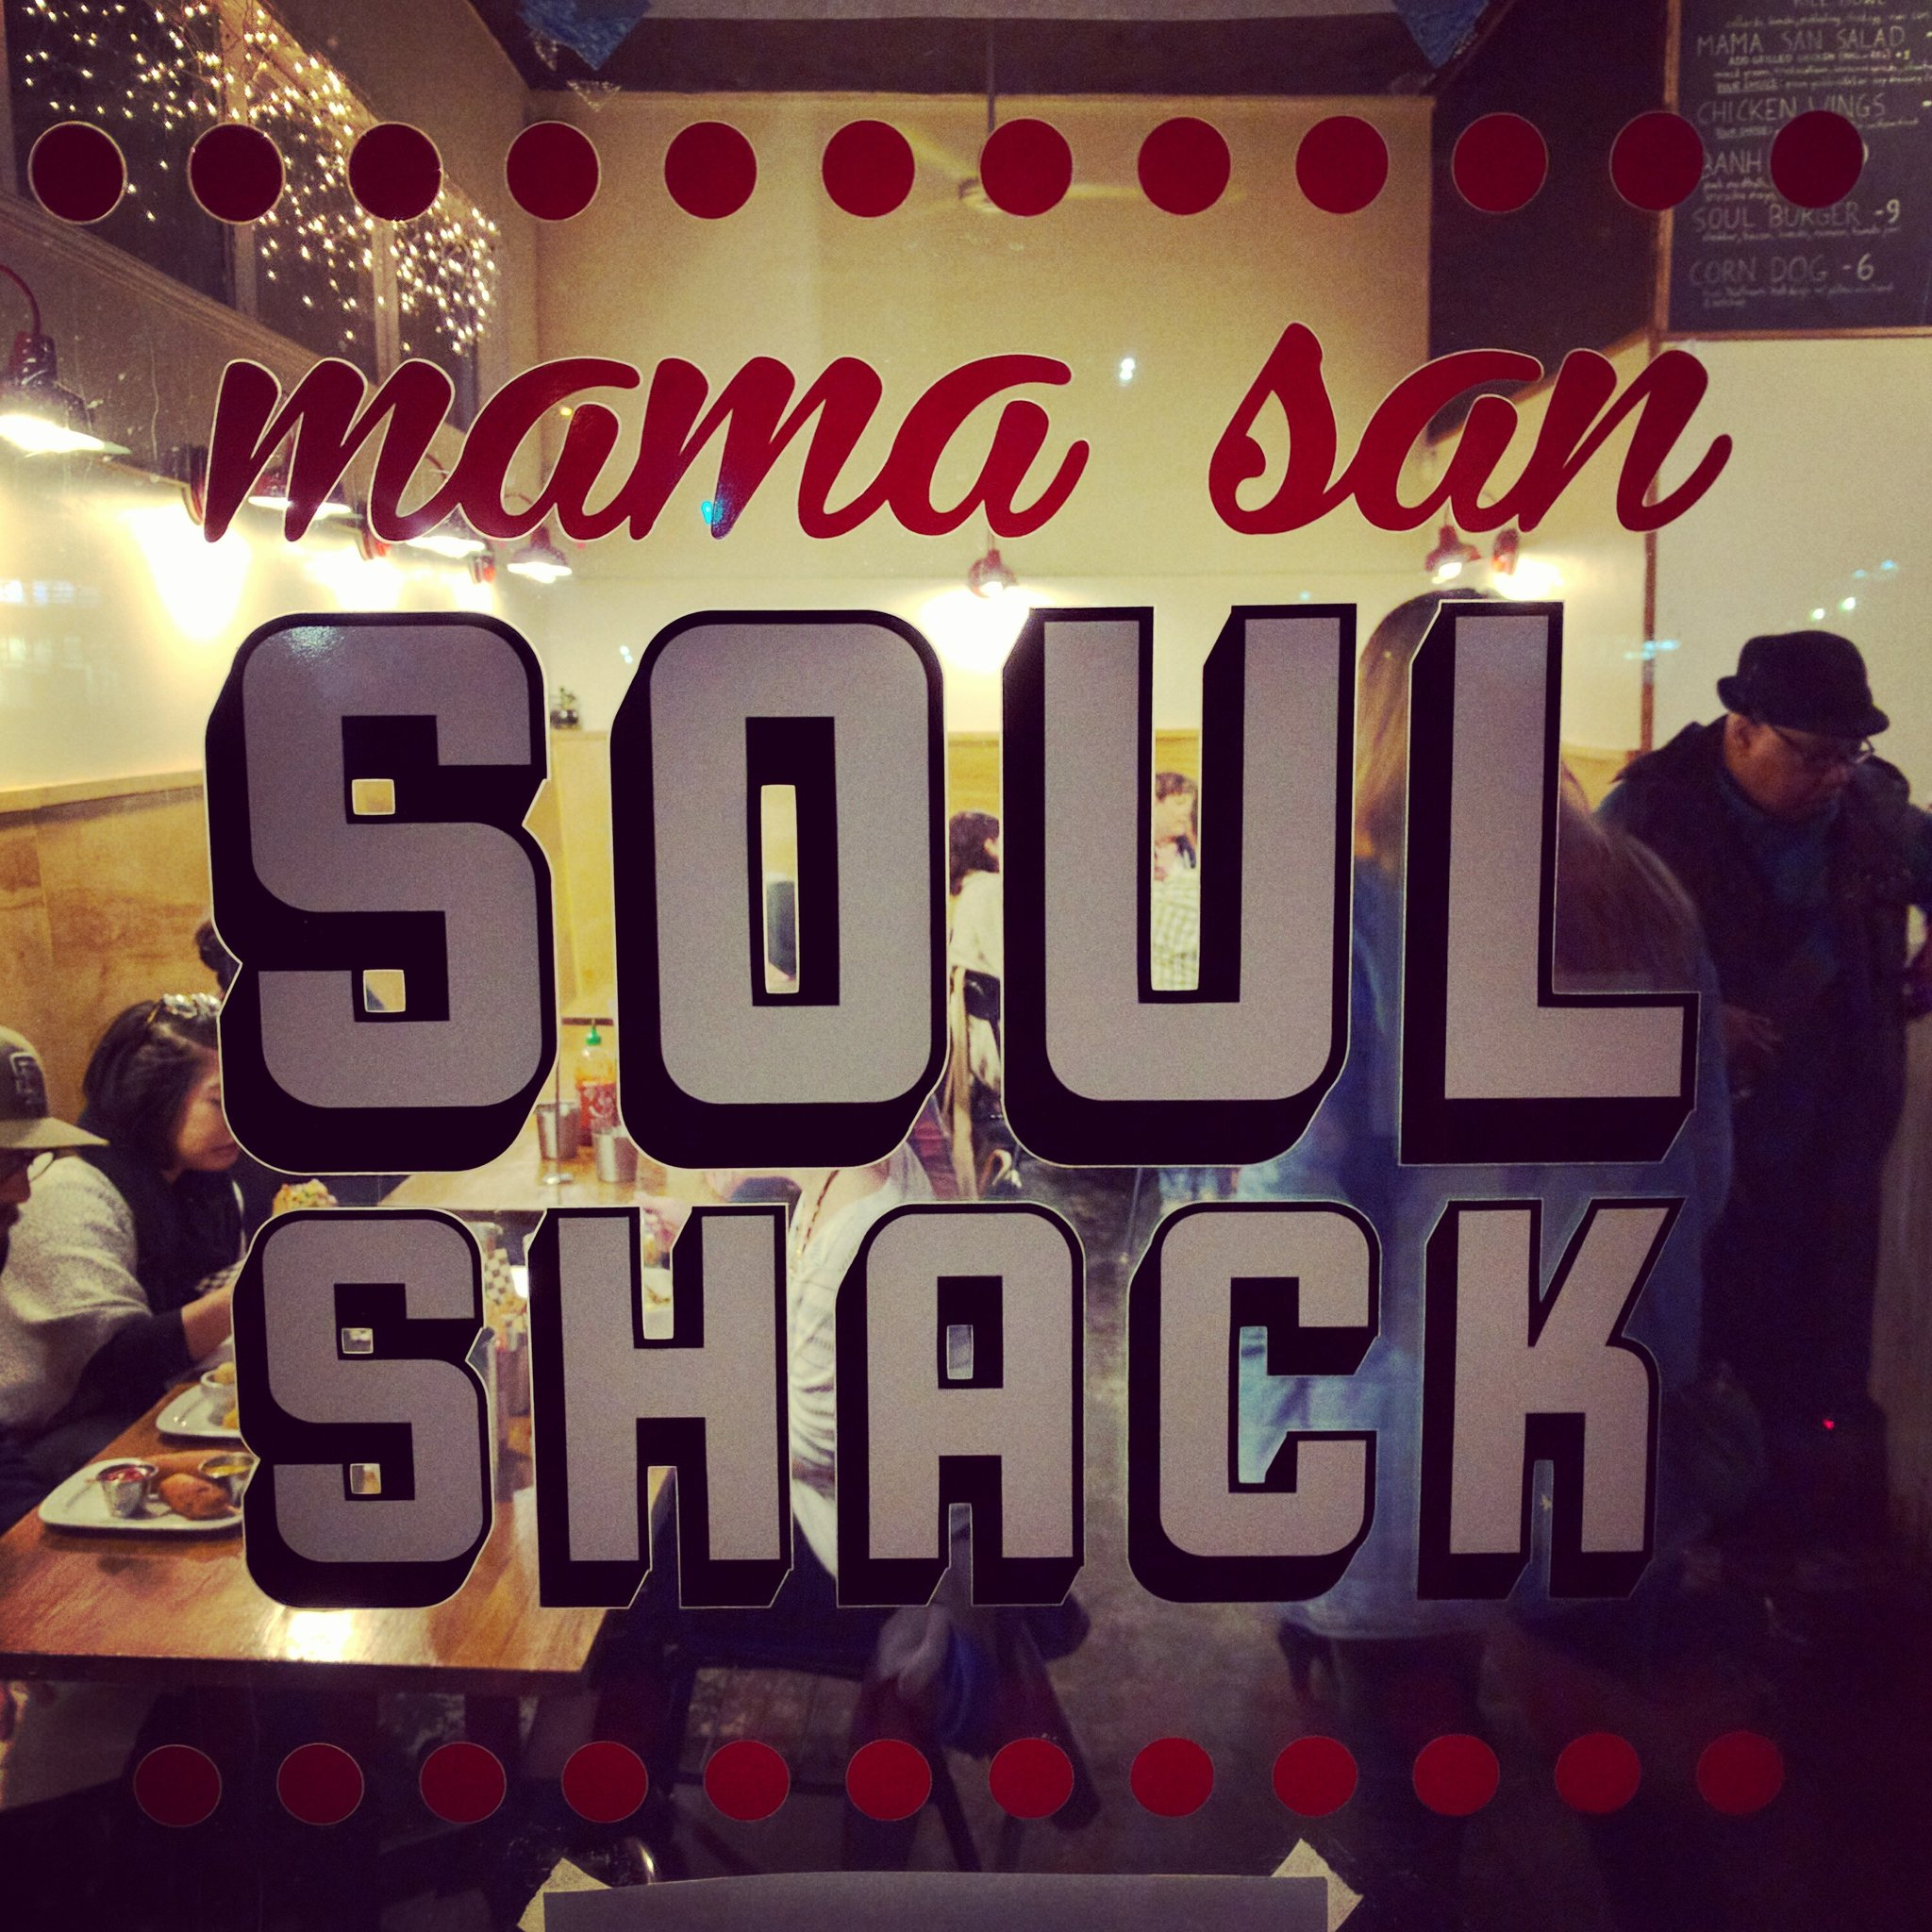 Day 5 for #bhm takes us to #StJohns in #PDX where #blackbiz @MSSoulShack fuses soul & asian food. Don't miss the fried okra! @tedwheeler https://t.co/DKOwUI3UPi